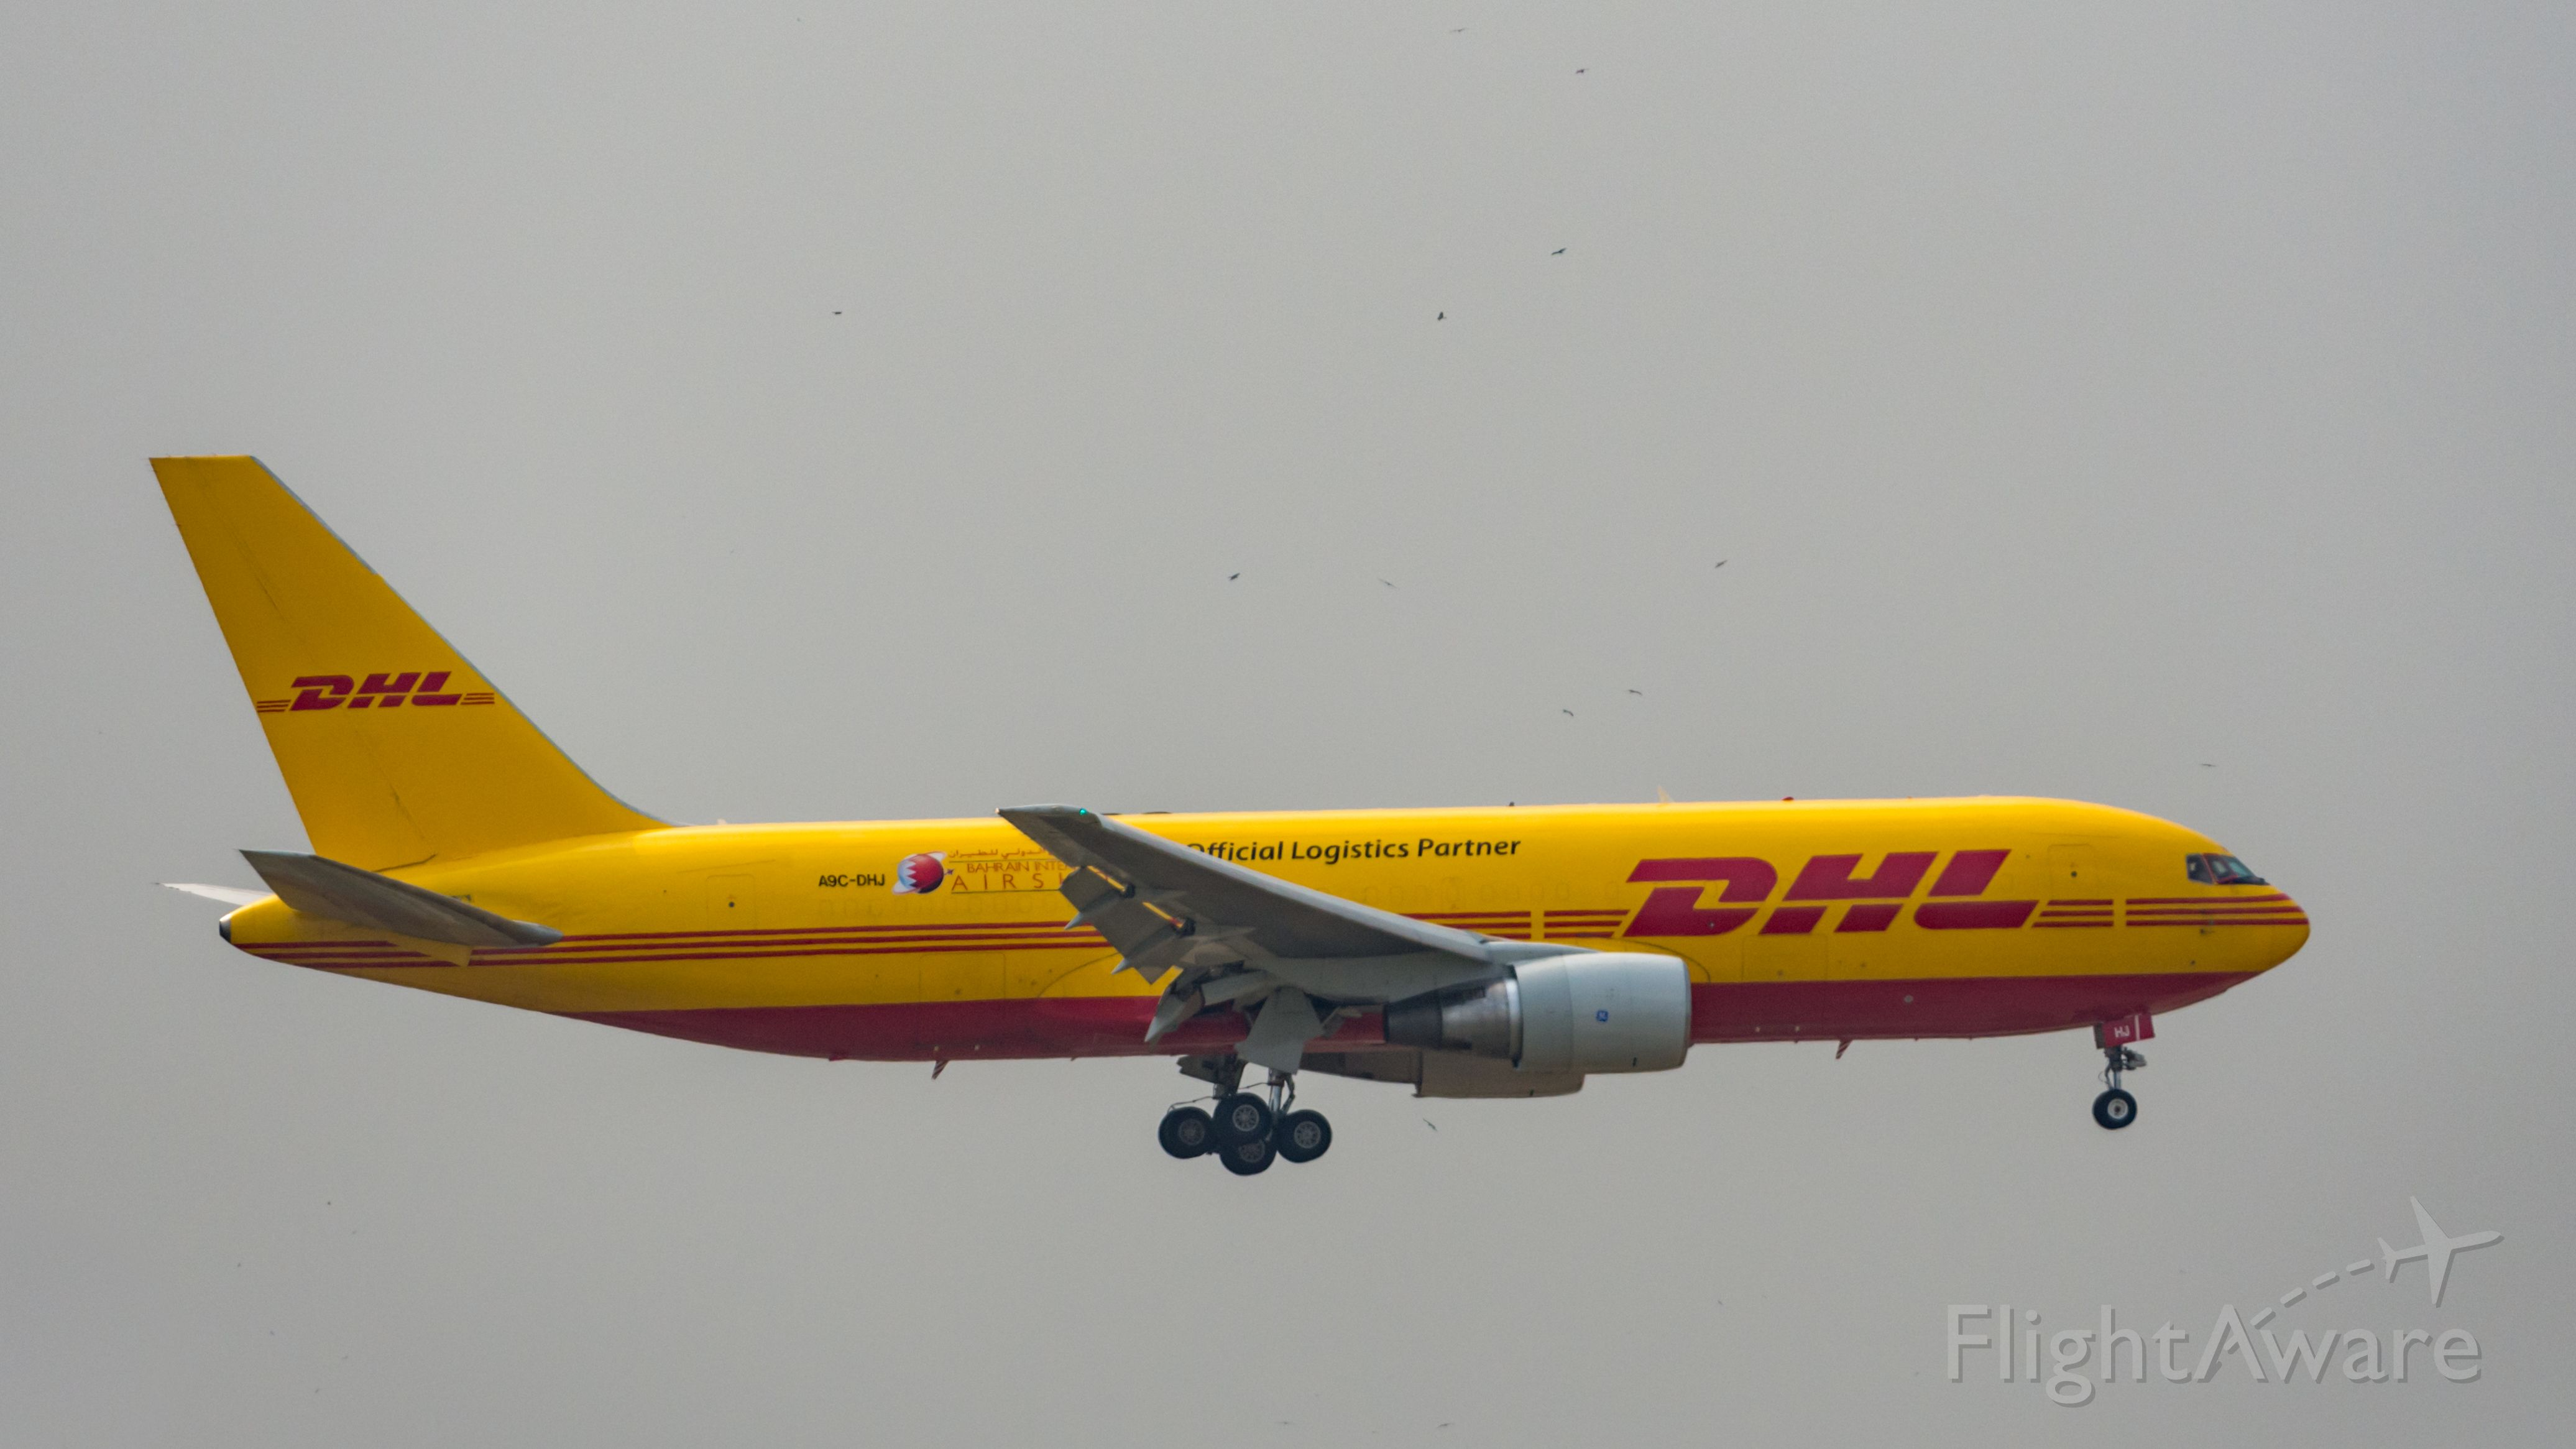 BOEING 767-200 (A9C-DHJ)